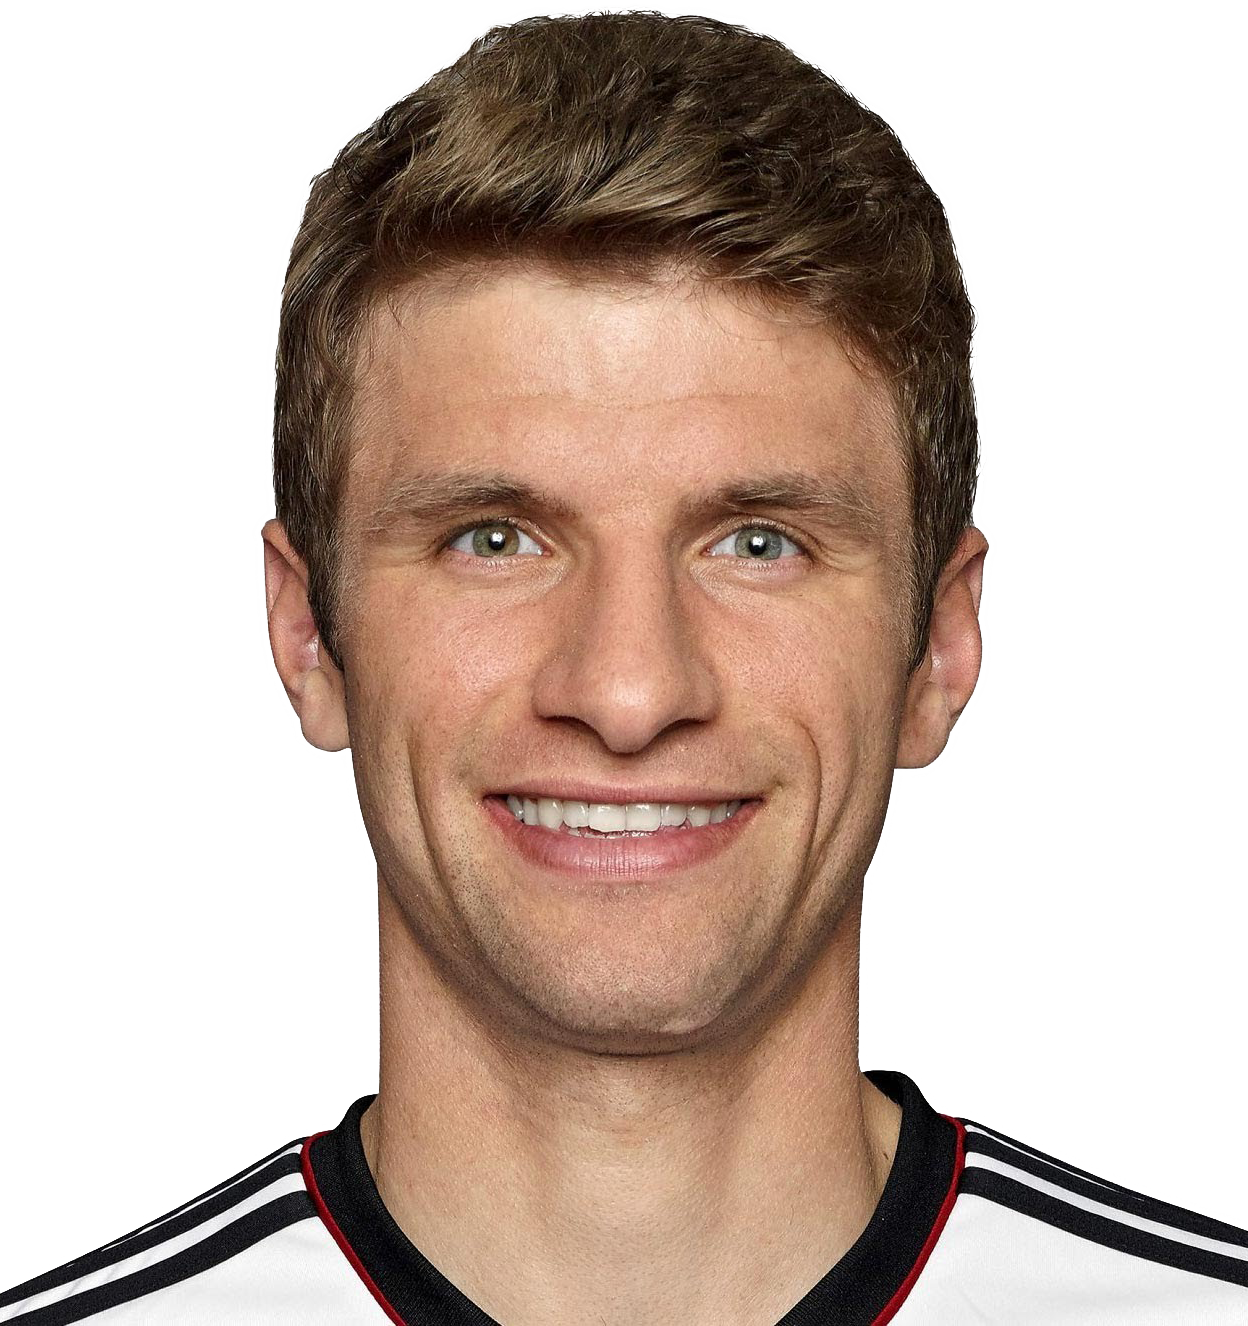 Thomas Müller | FIFA Football Gaming wiki